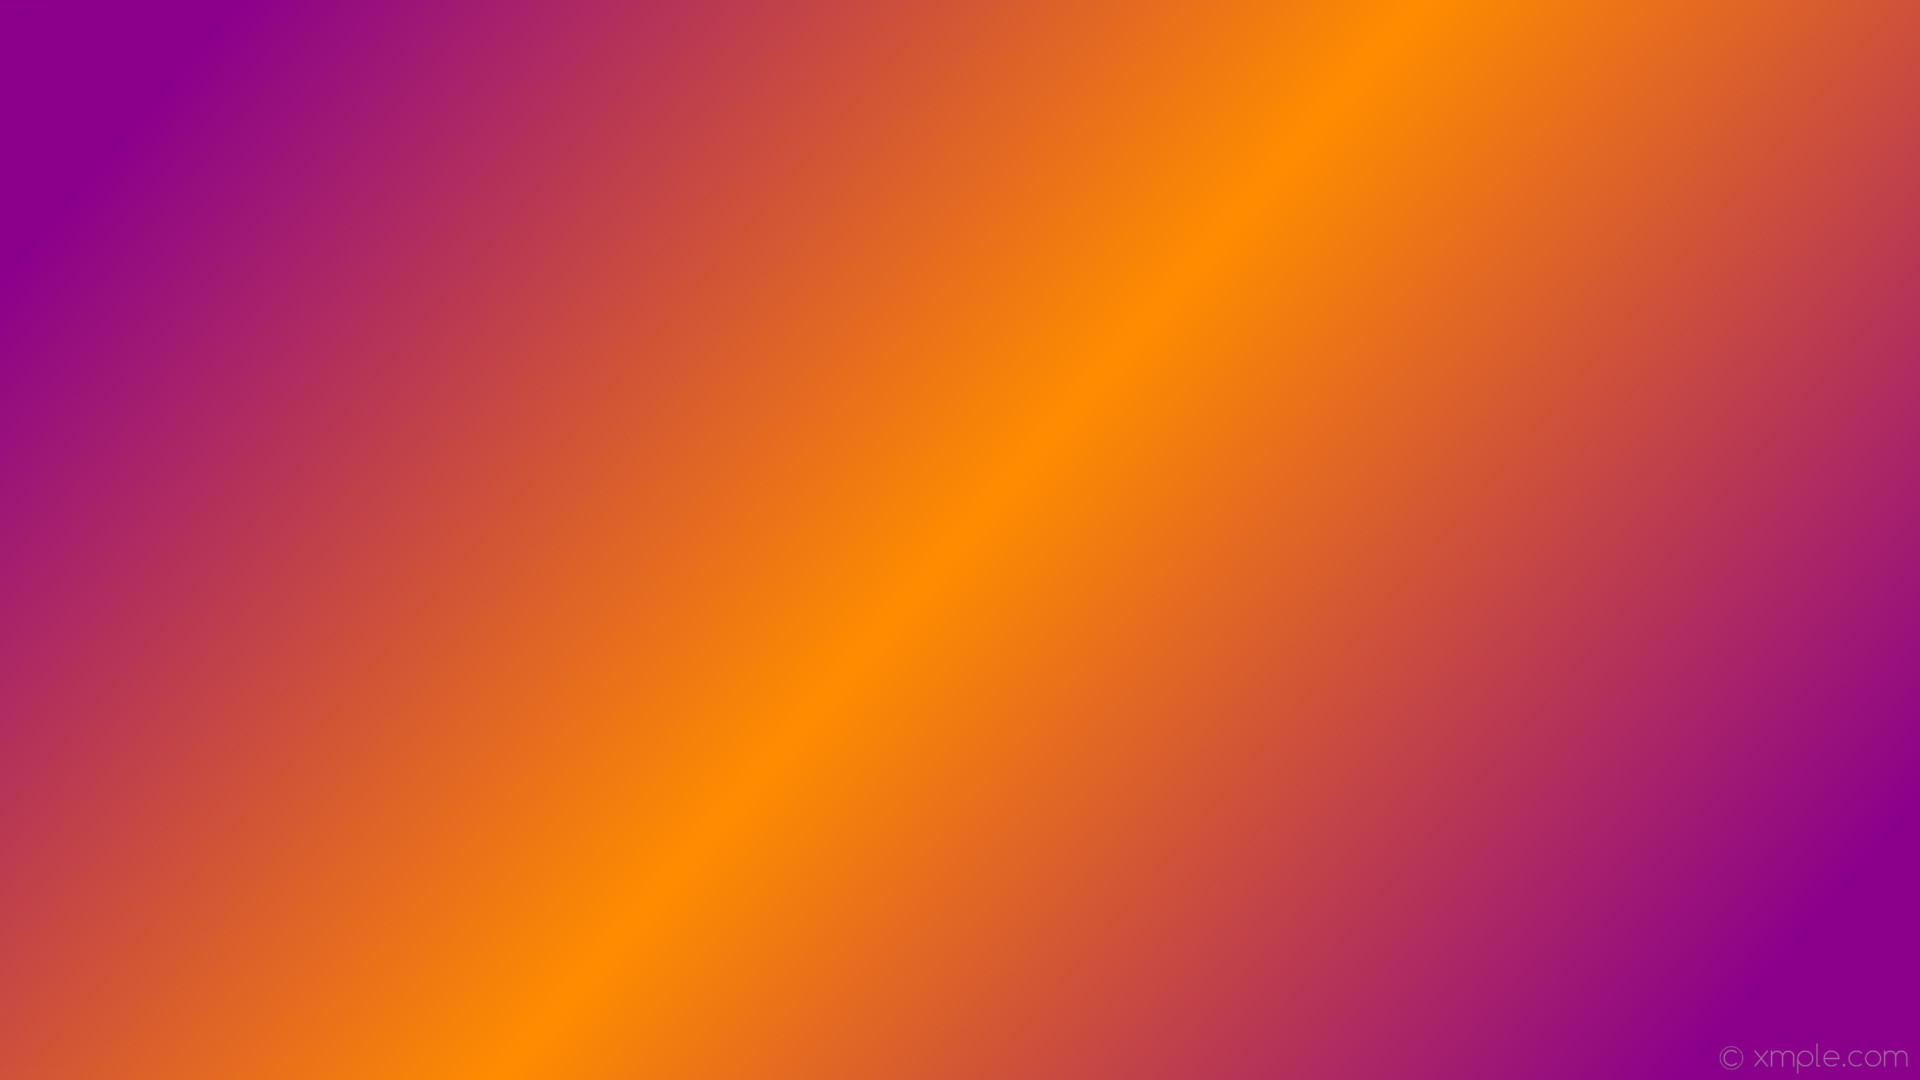 Purple and Orange Backgrounds (48+ images)